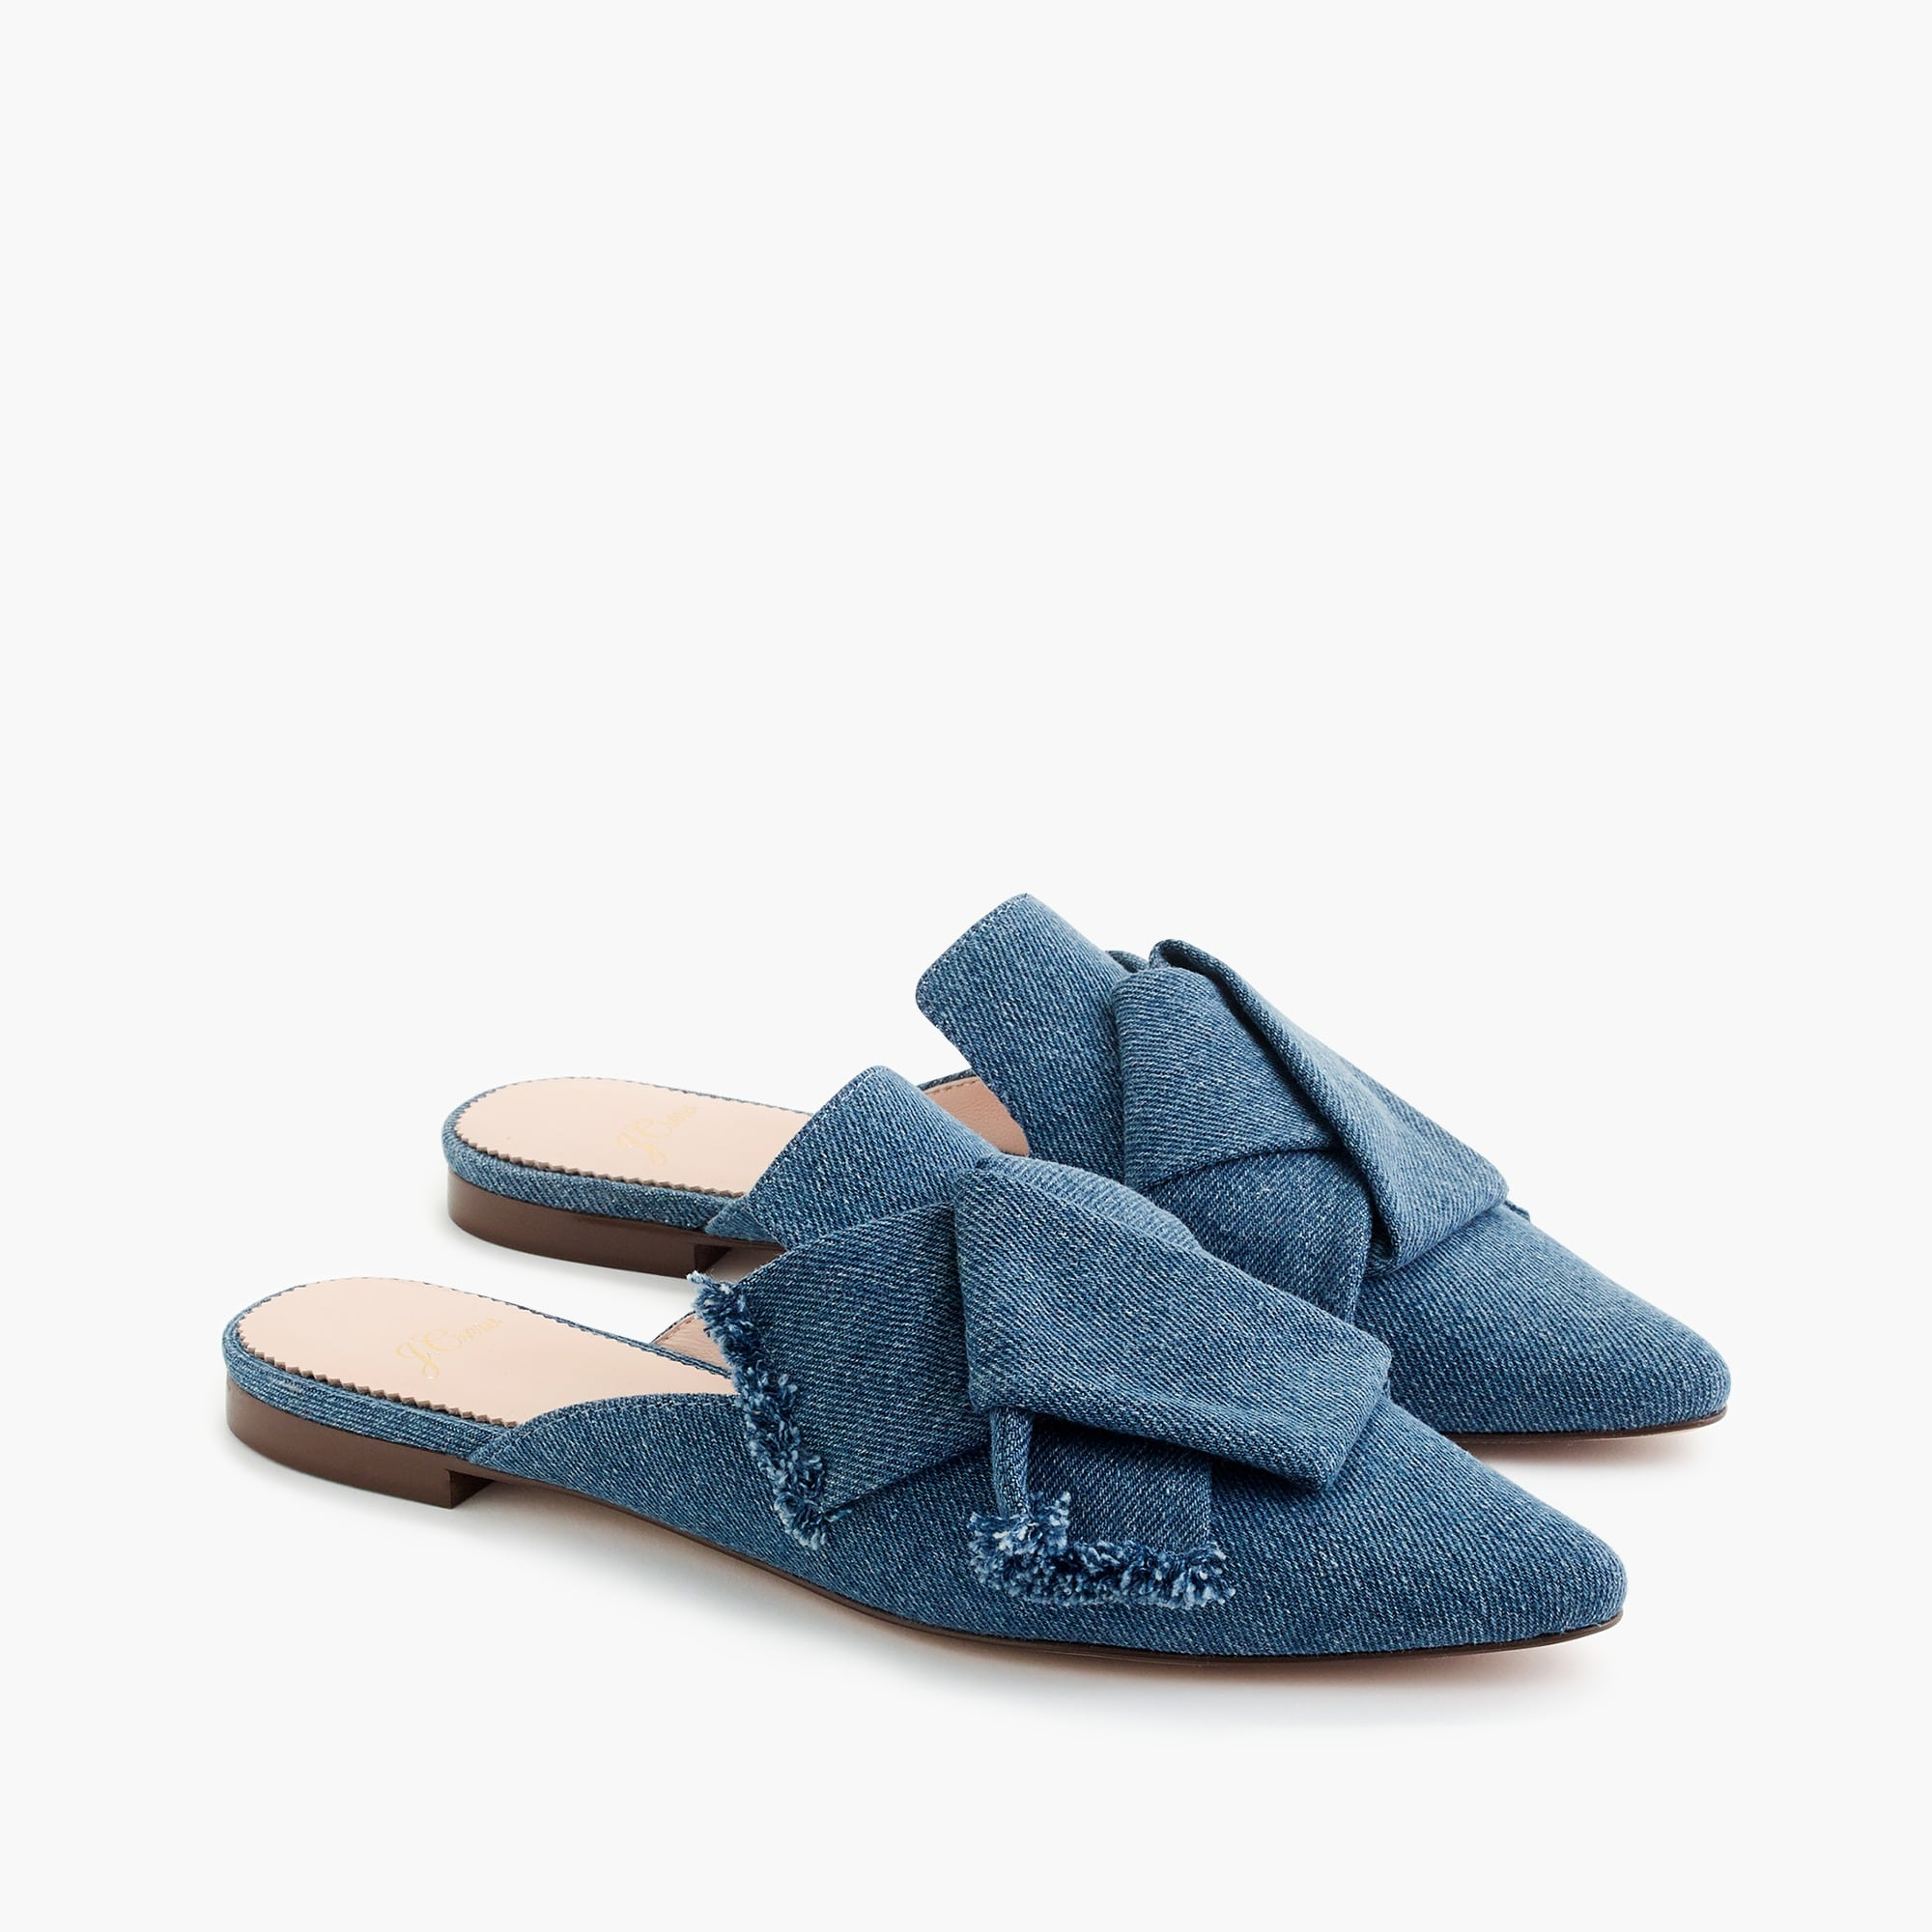 womens Pointed-toe slides in denim